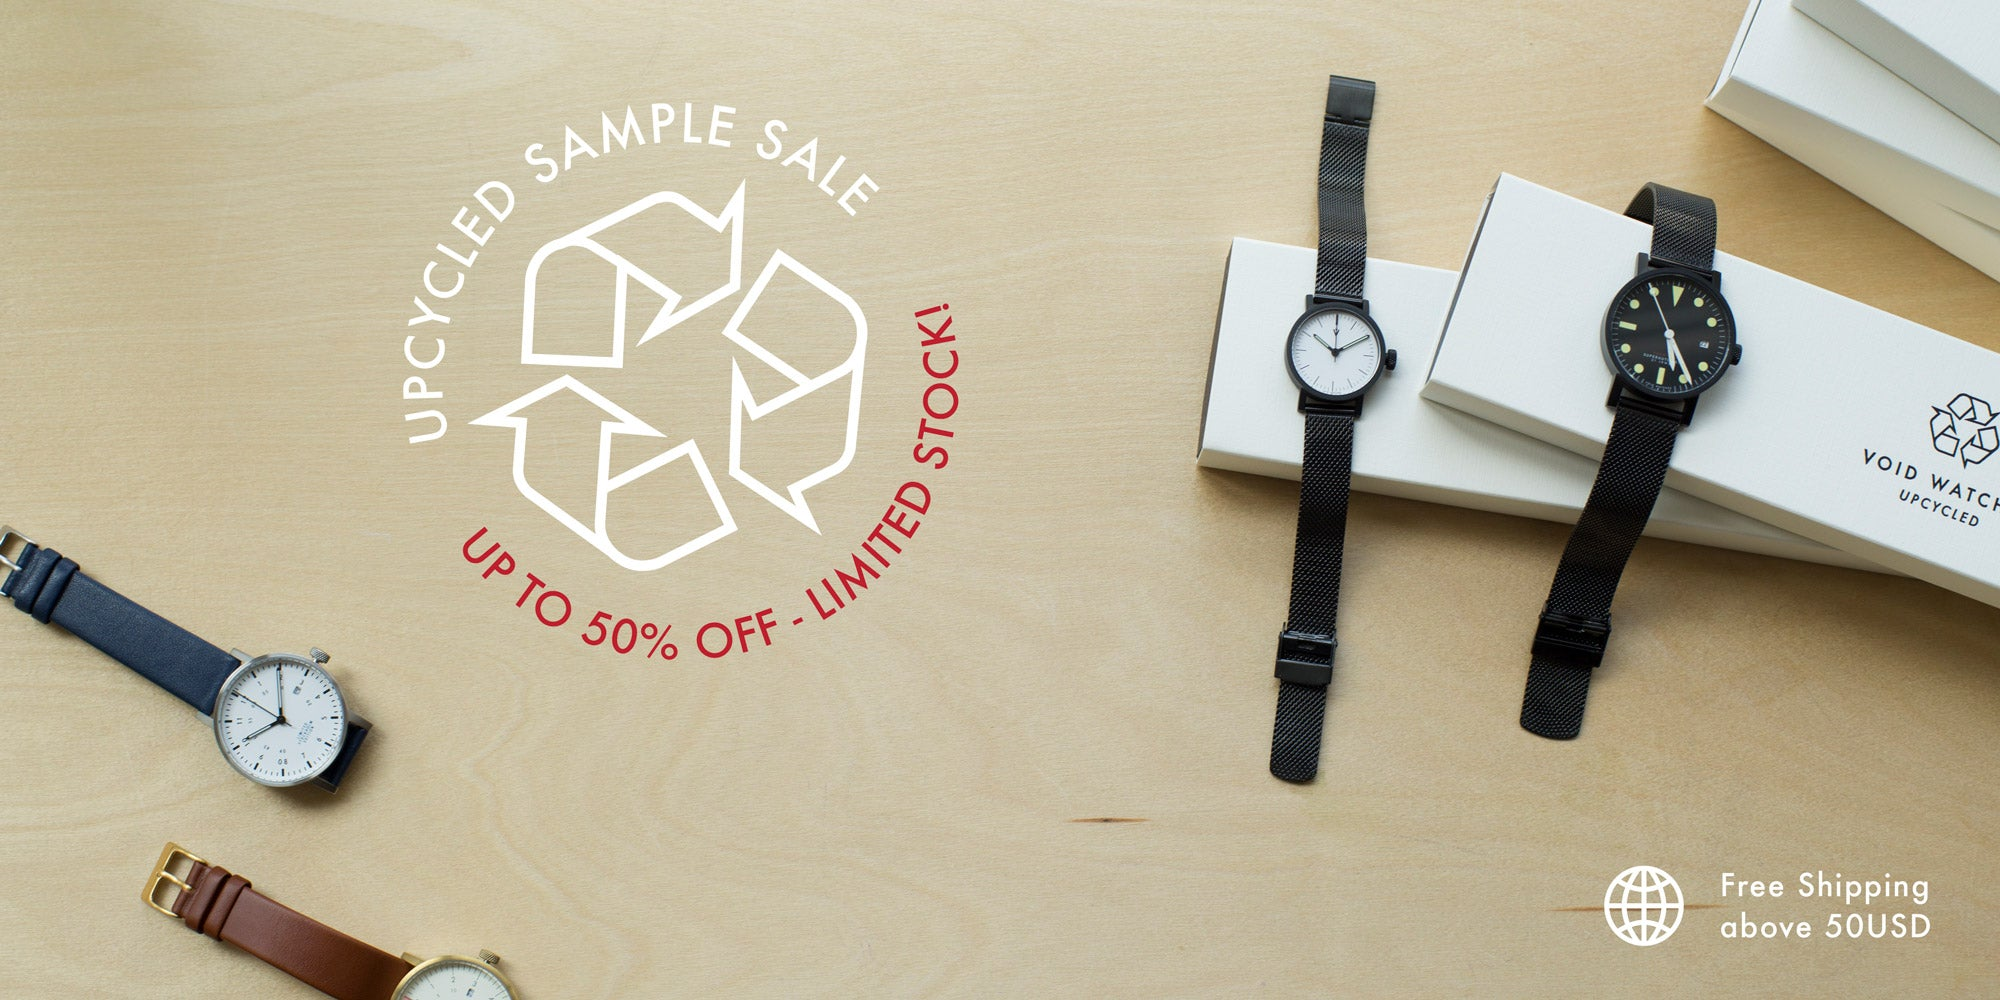 The Upcycled Sample Sale: New Additions